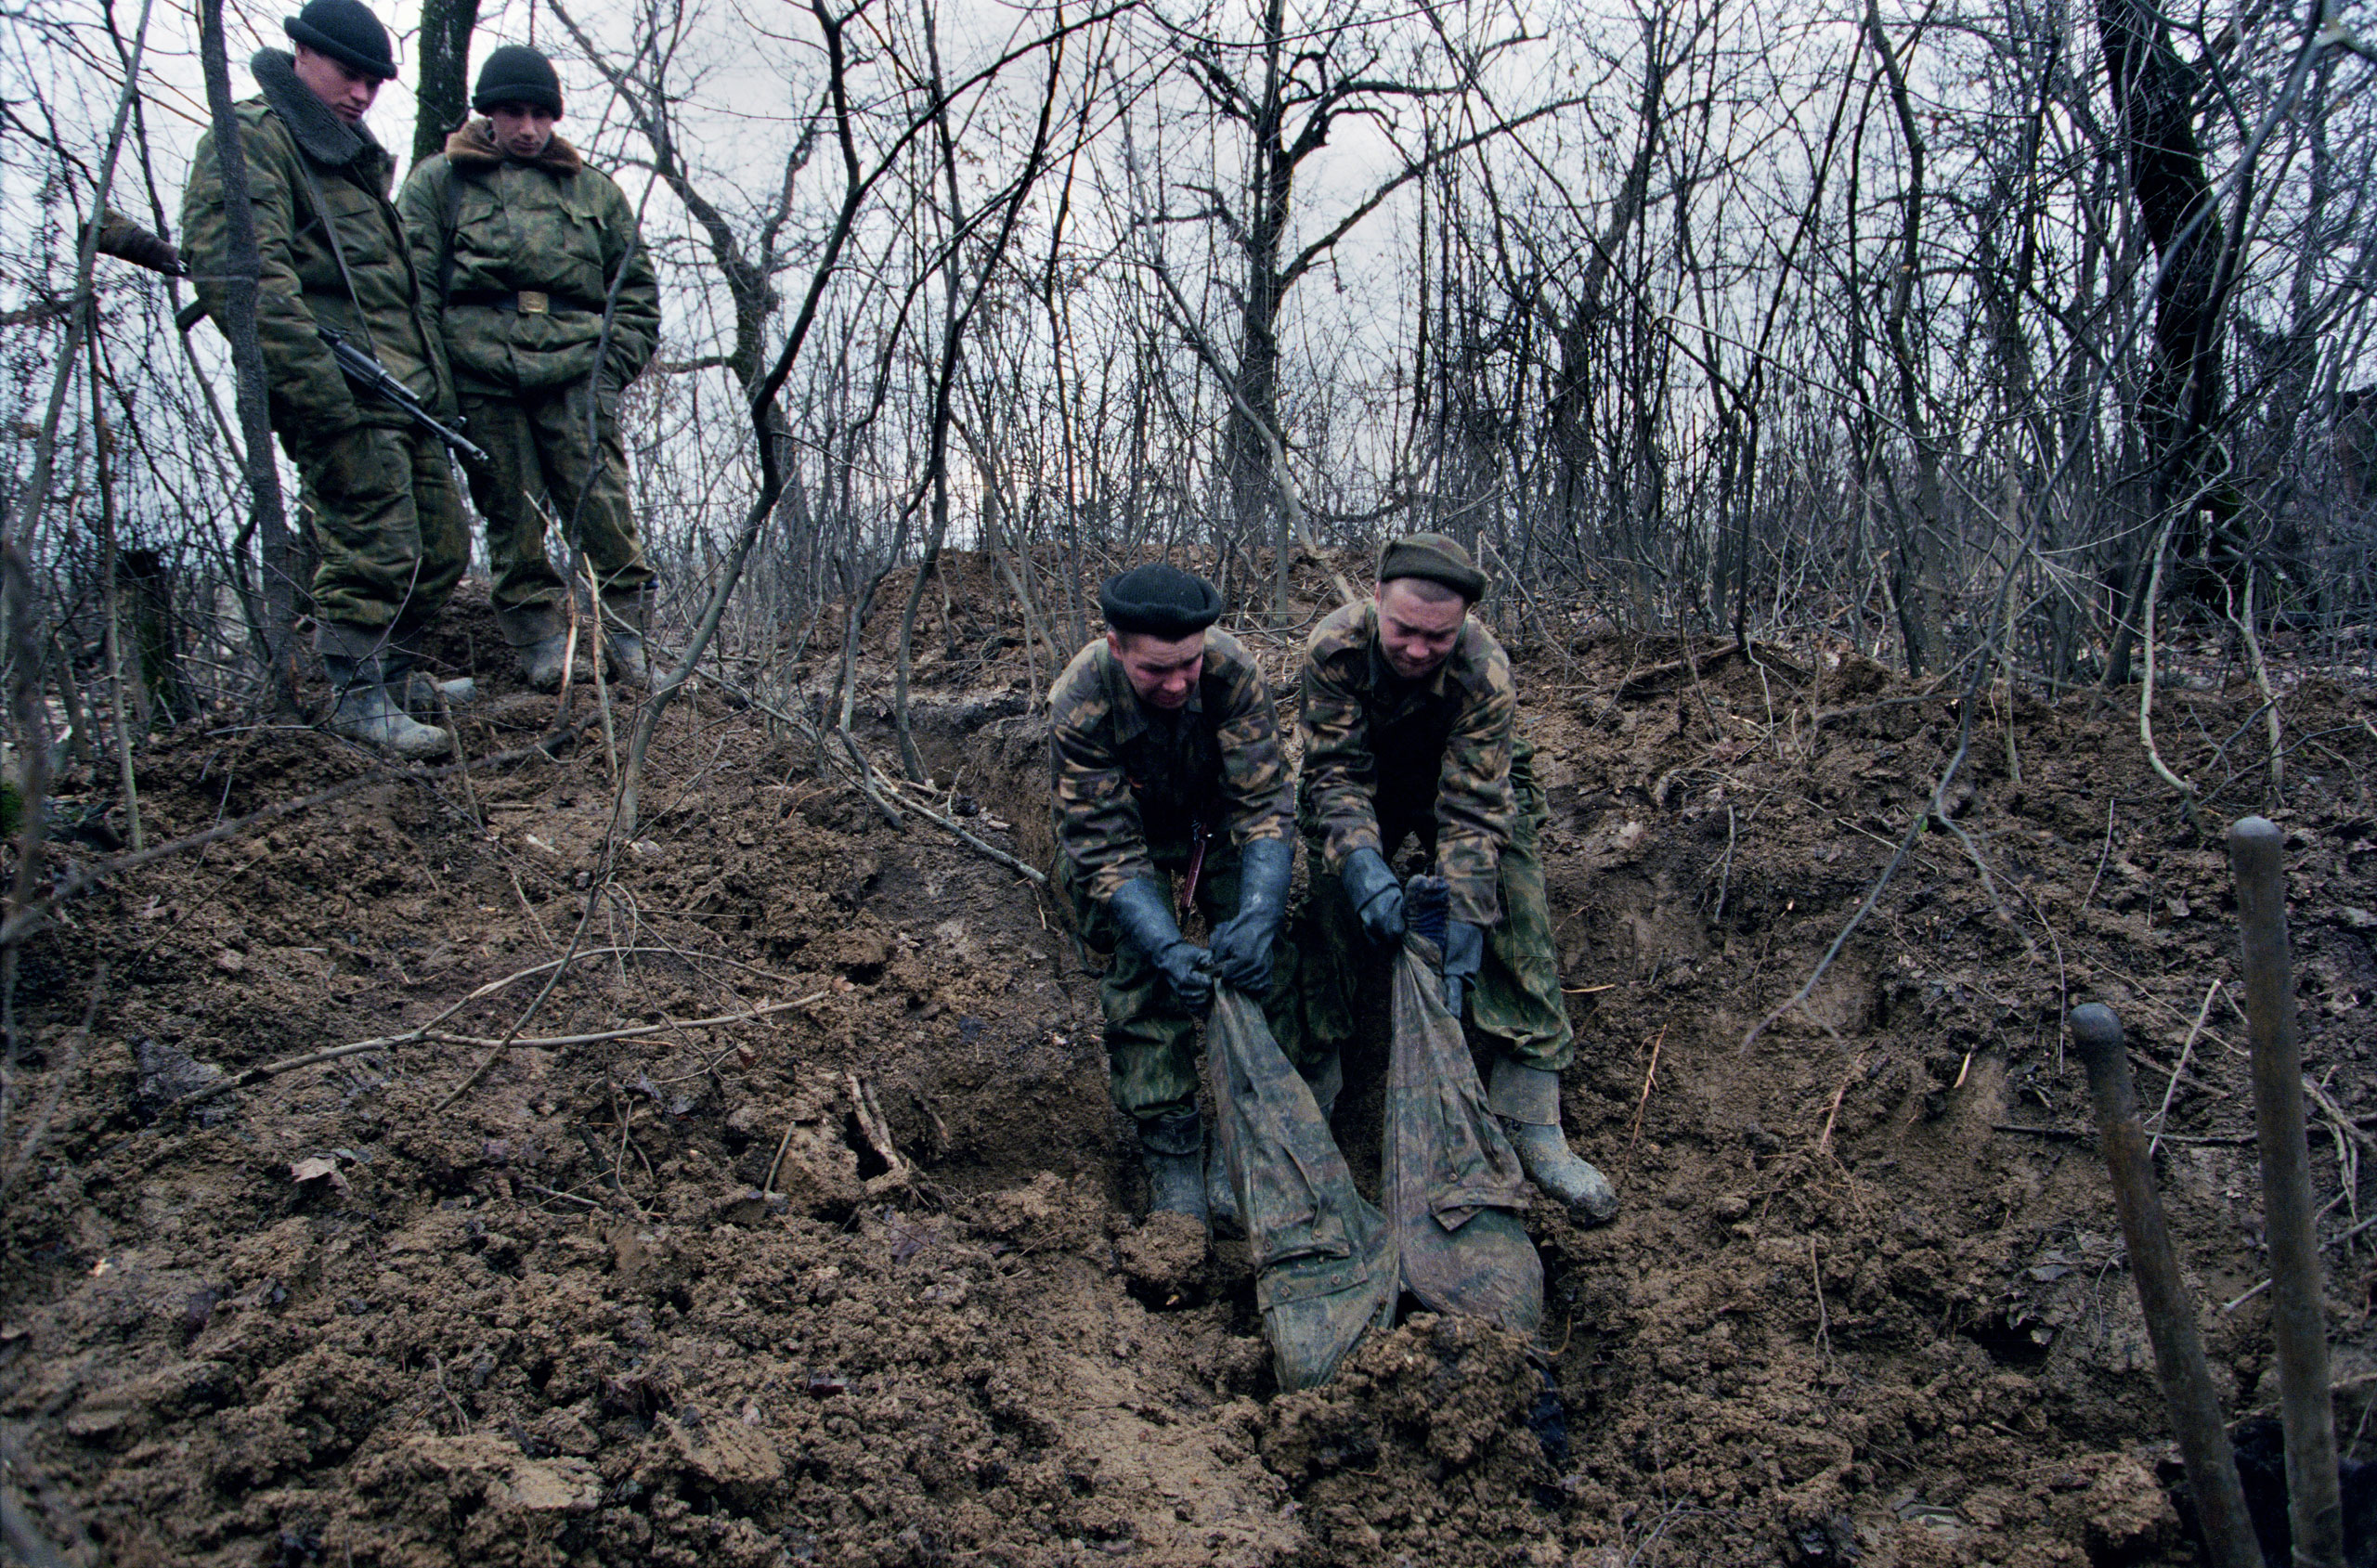 Russian forces uncover  the body of  a dead rebel in Tsentaroy, Chechnya, the native village of the Kadyrov clan, December 1999.